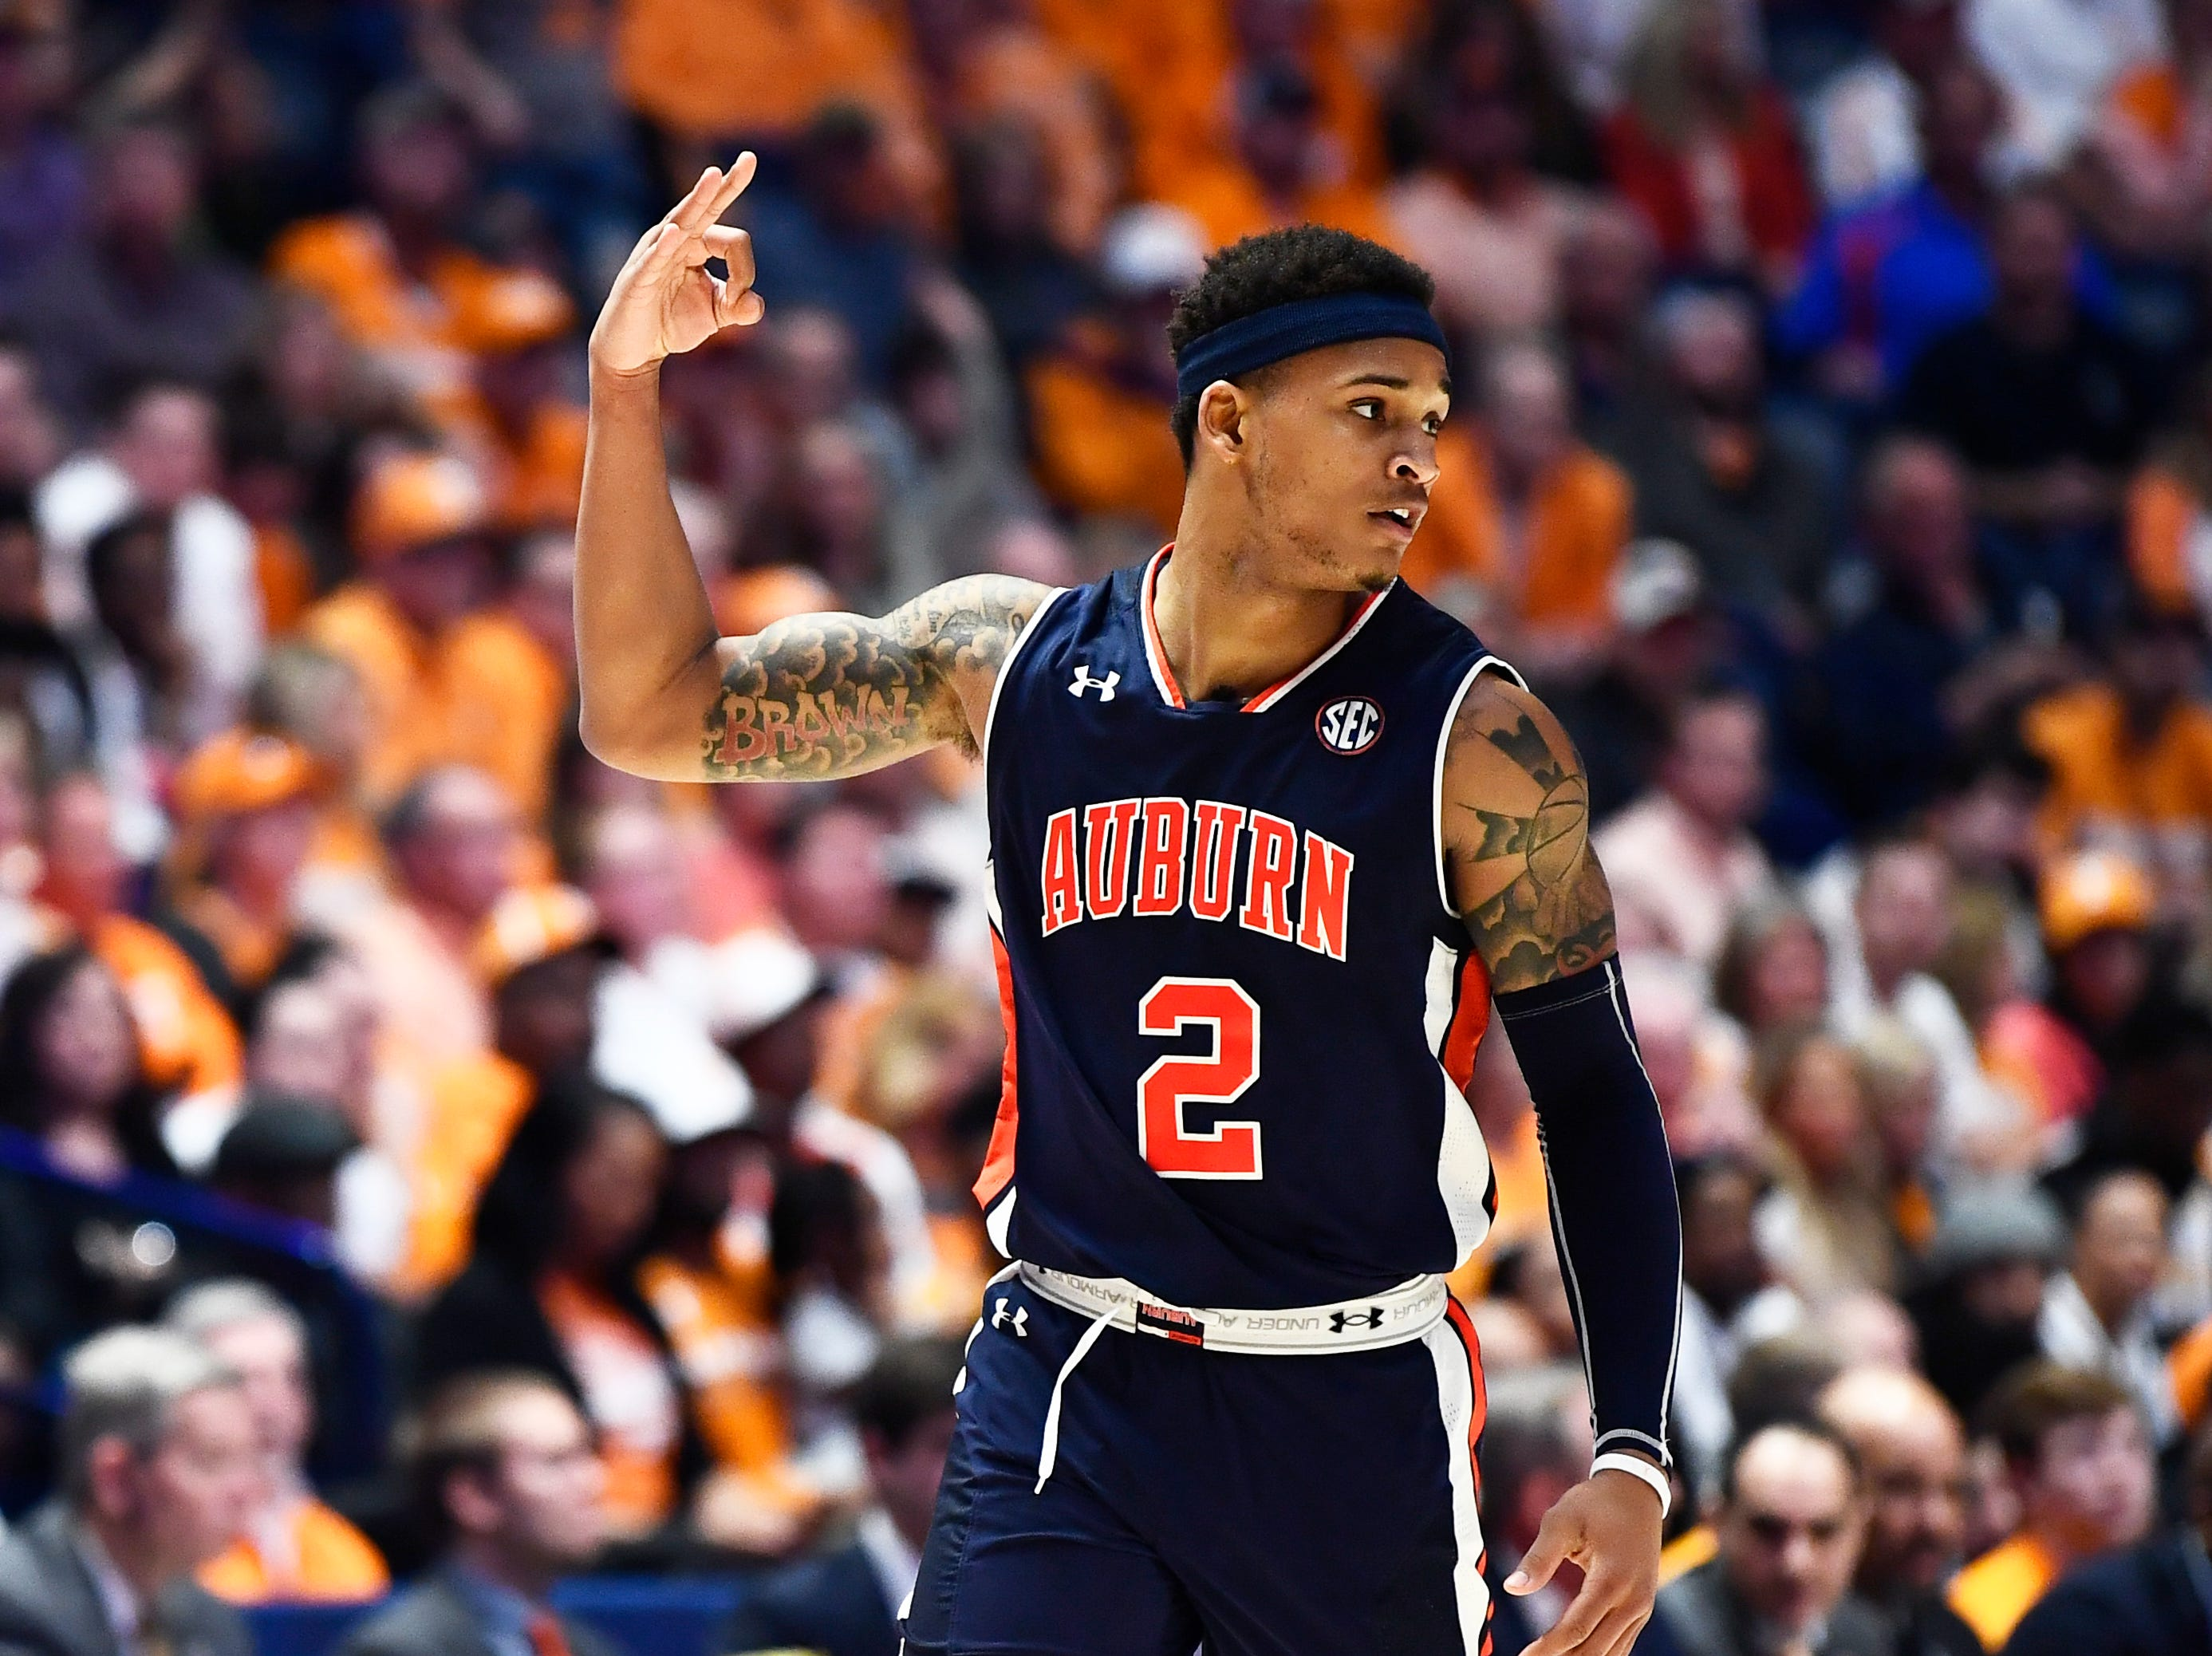 Auburn guard Bryce Brown (2) celebrates during the first half of the SEC Men's Basketball Tournament championship game at Bridgestone Arena in Nashville, Tenn., Sunday, March 17, 2019.